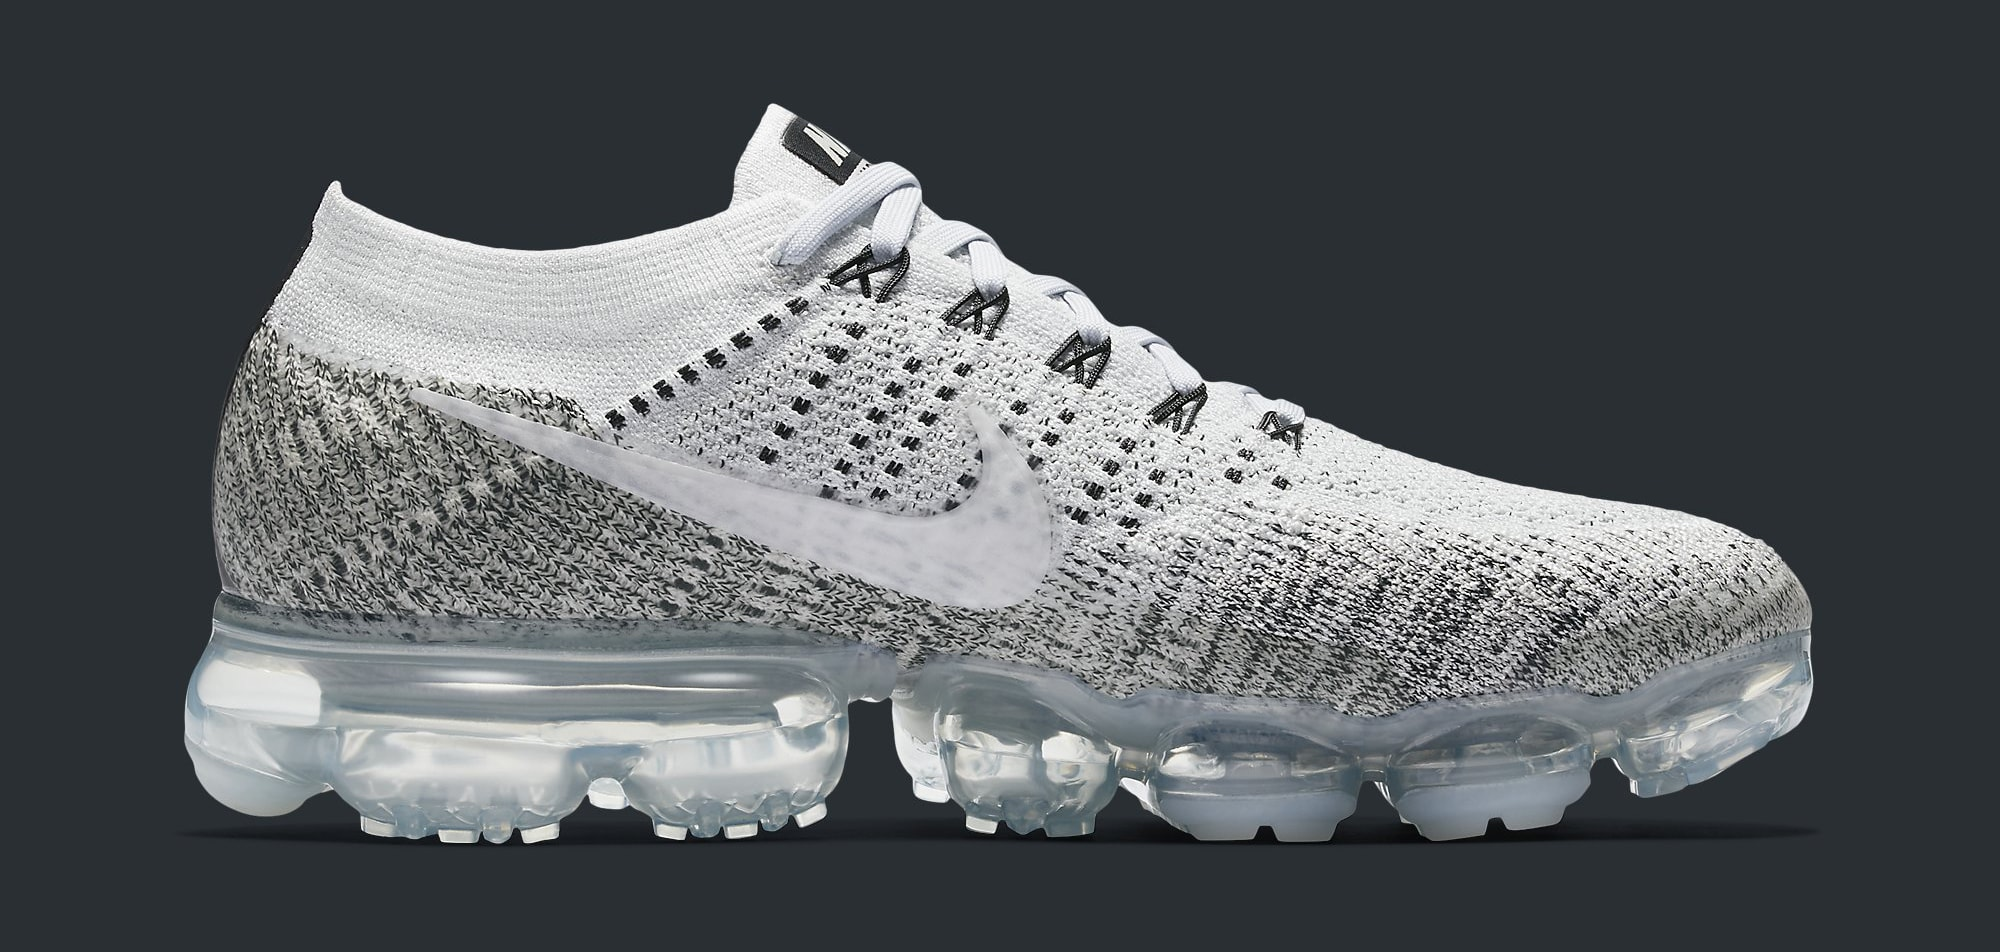 /tg/station 13 View topic [Deleted] Nike Atmosphere VaporMax Oreo